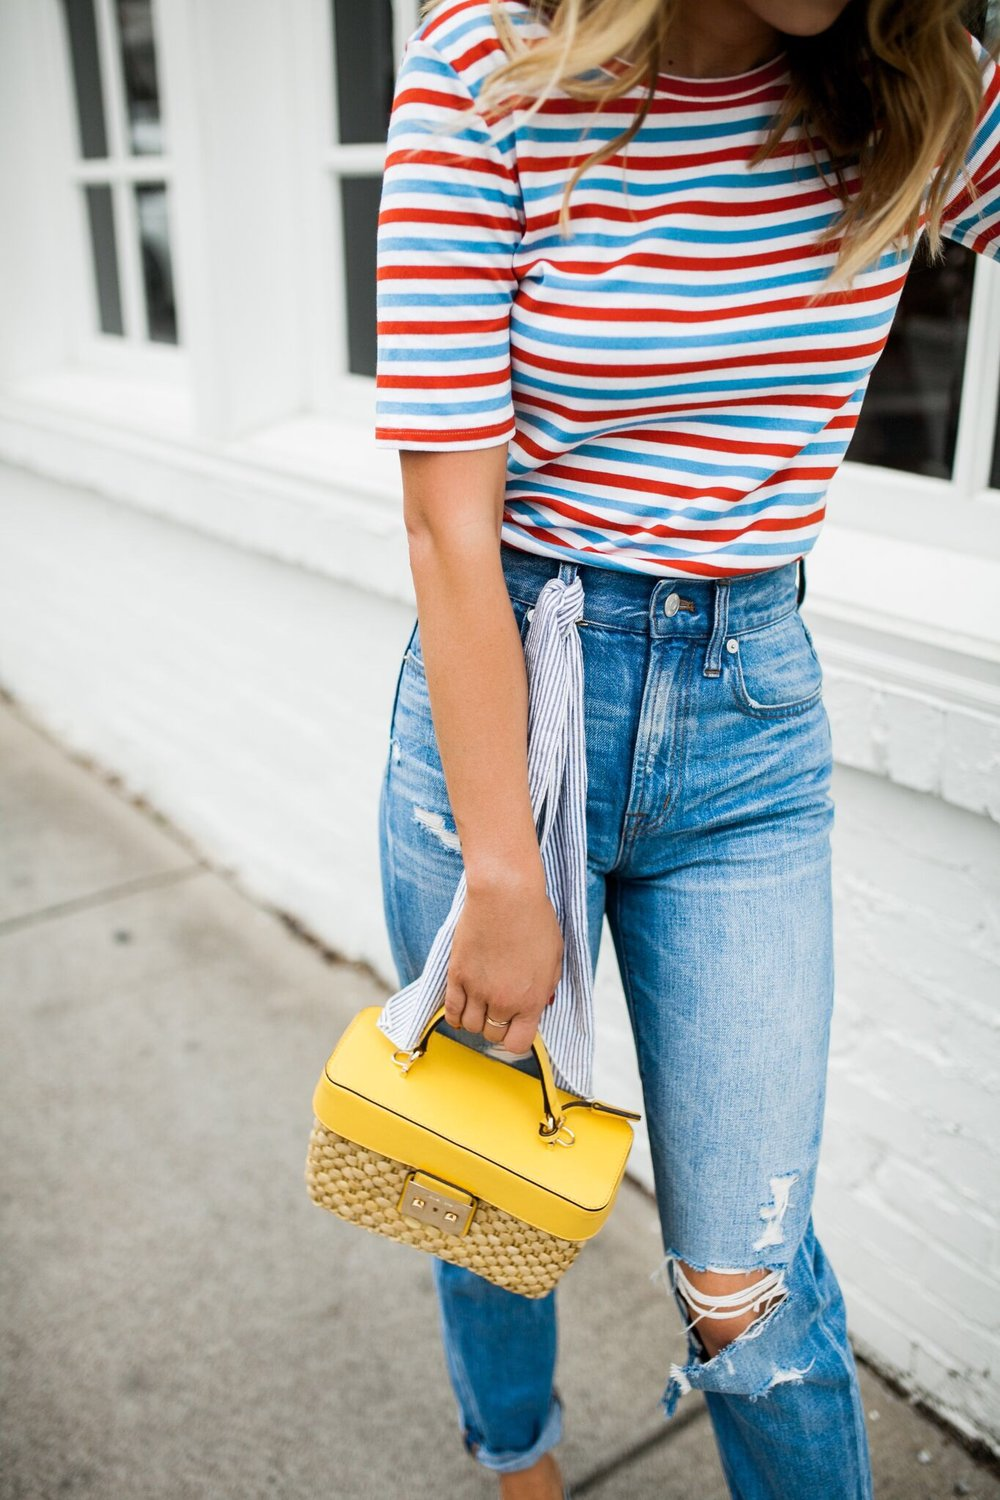 michael-kors-straw-yellow-bag.JPG